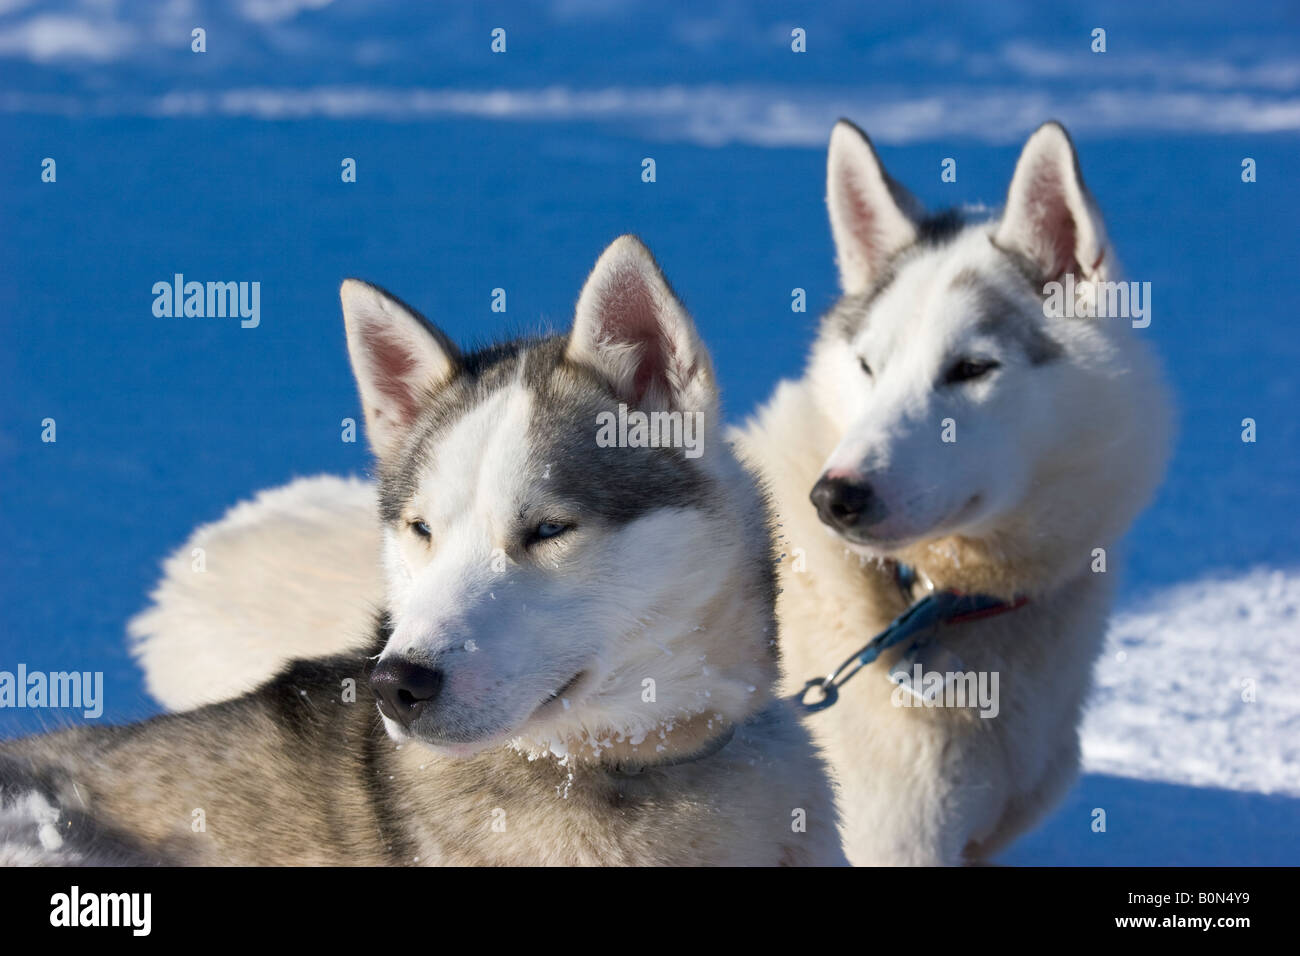 Two siberian huskies in winterly Lapland / northern Sweden - Stock Image